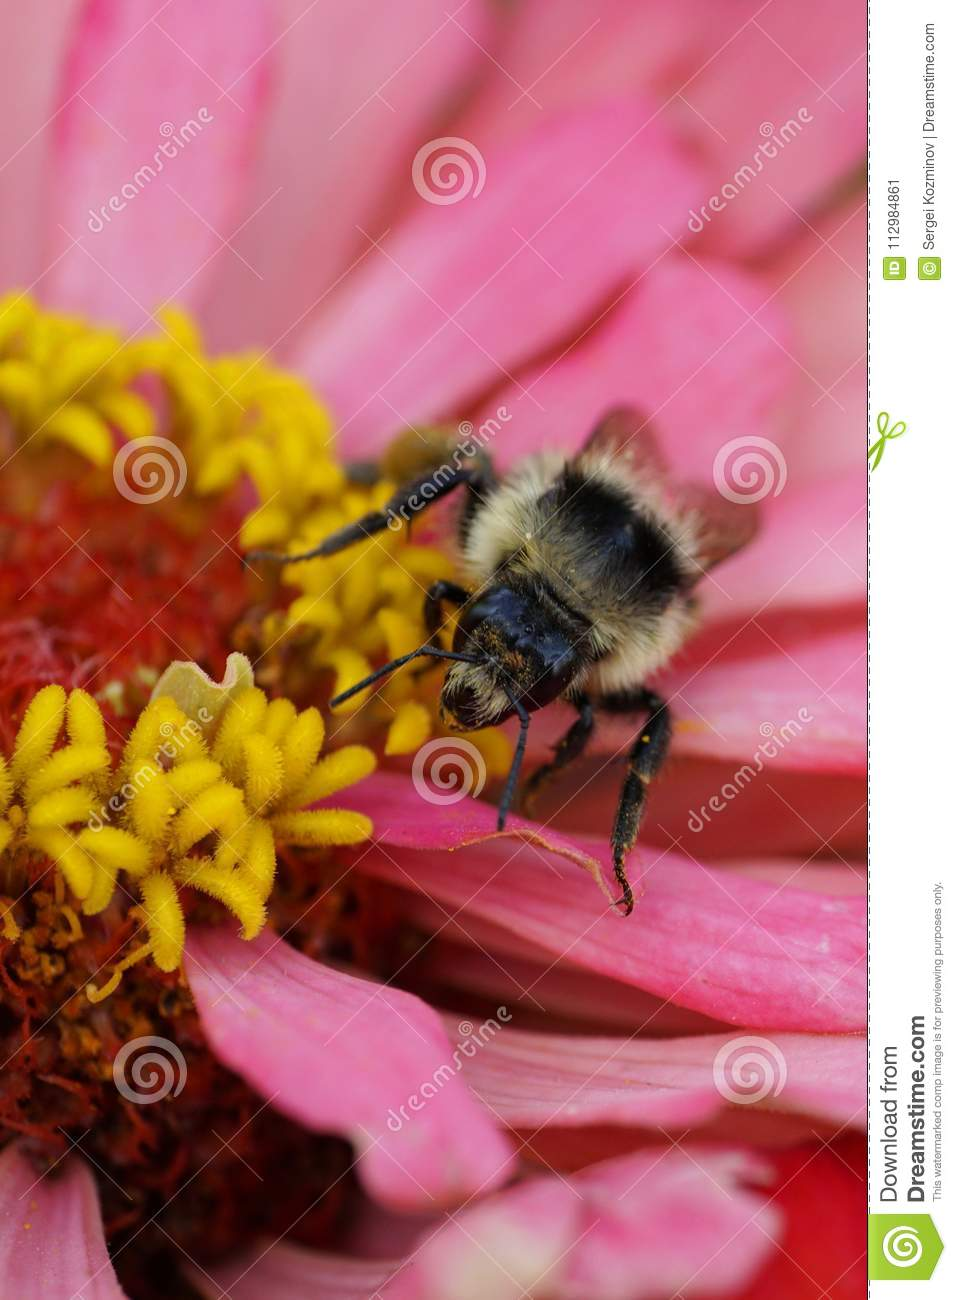 Close-up view from front of Caucasian fluffy striped bumblebee B